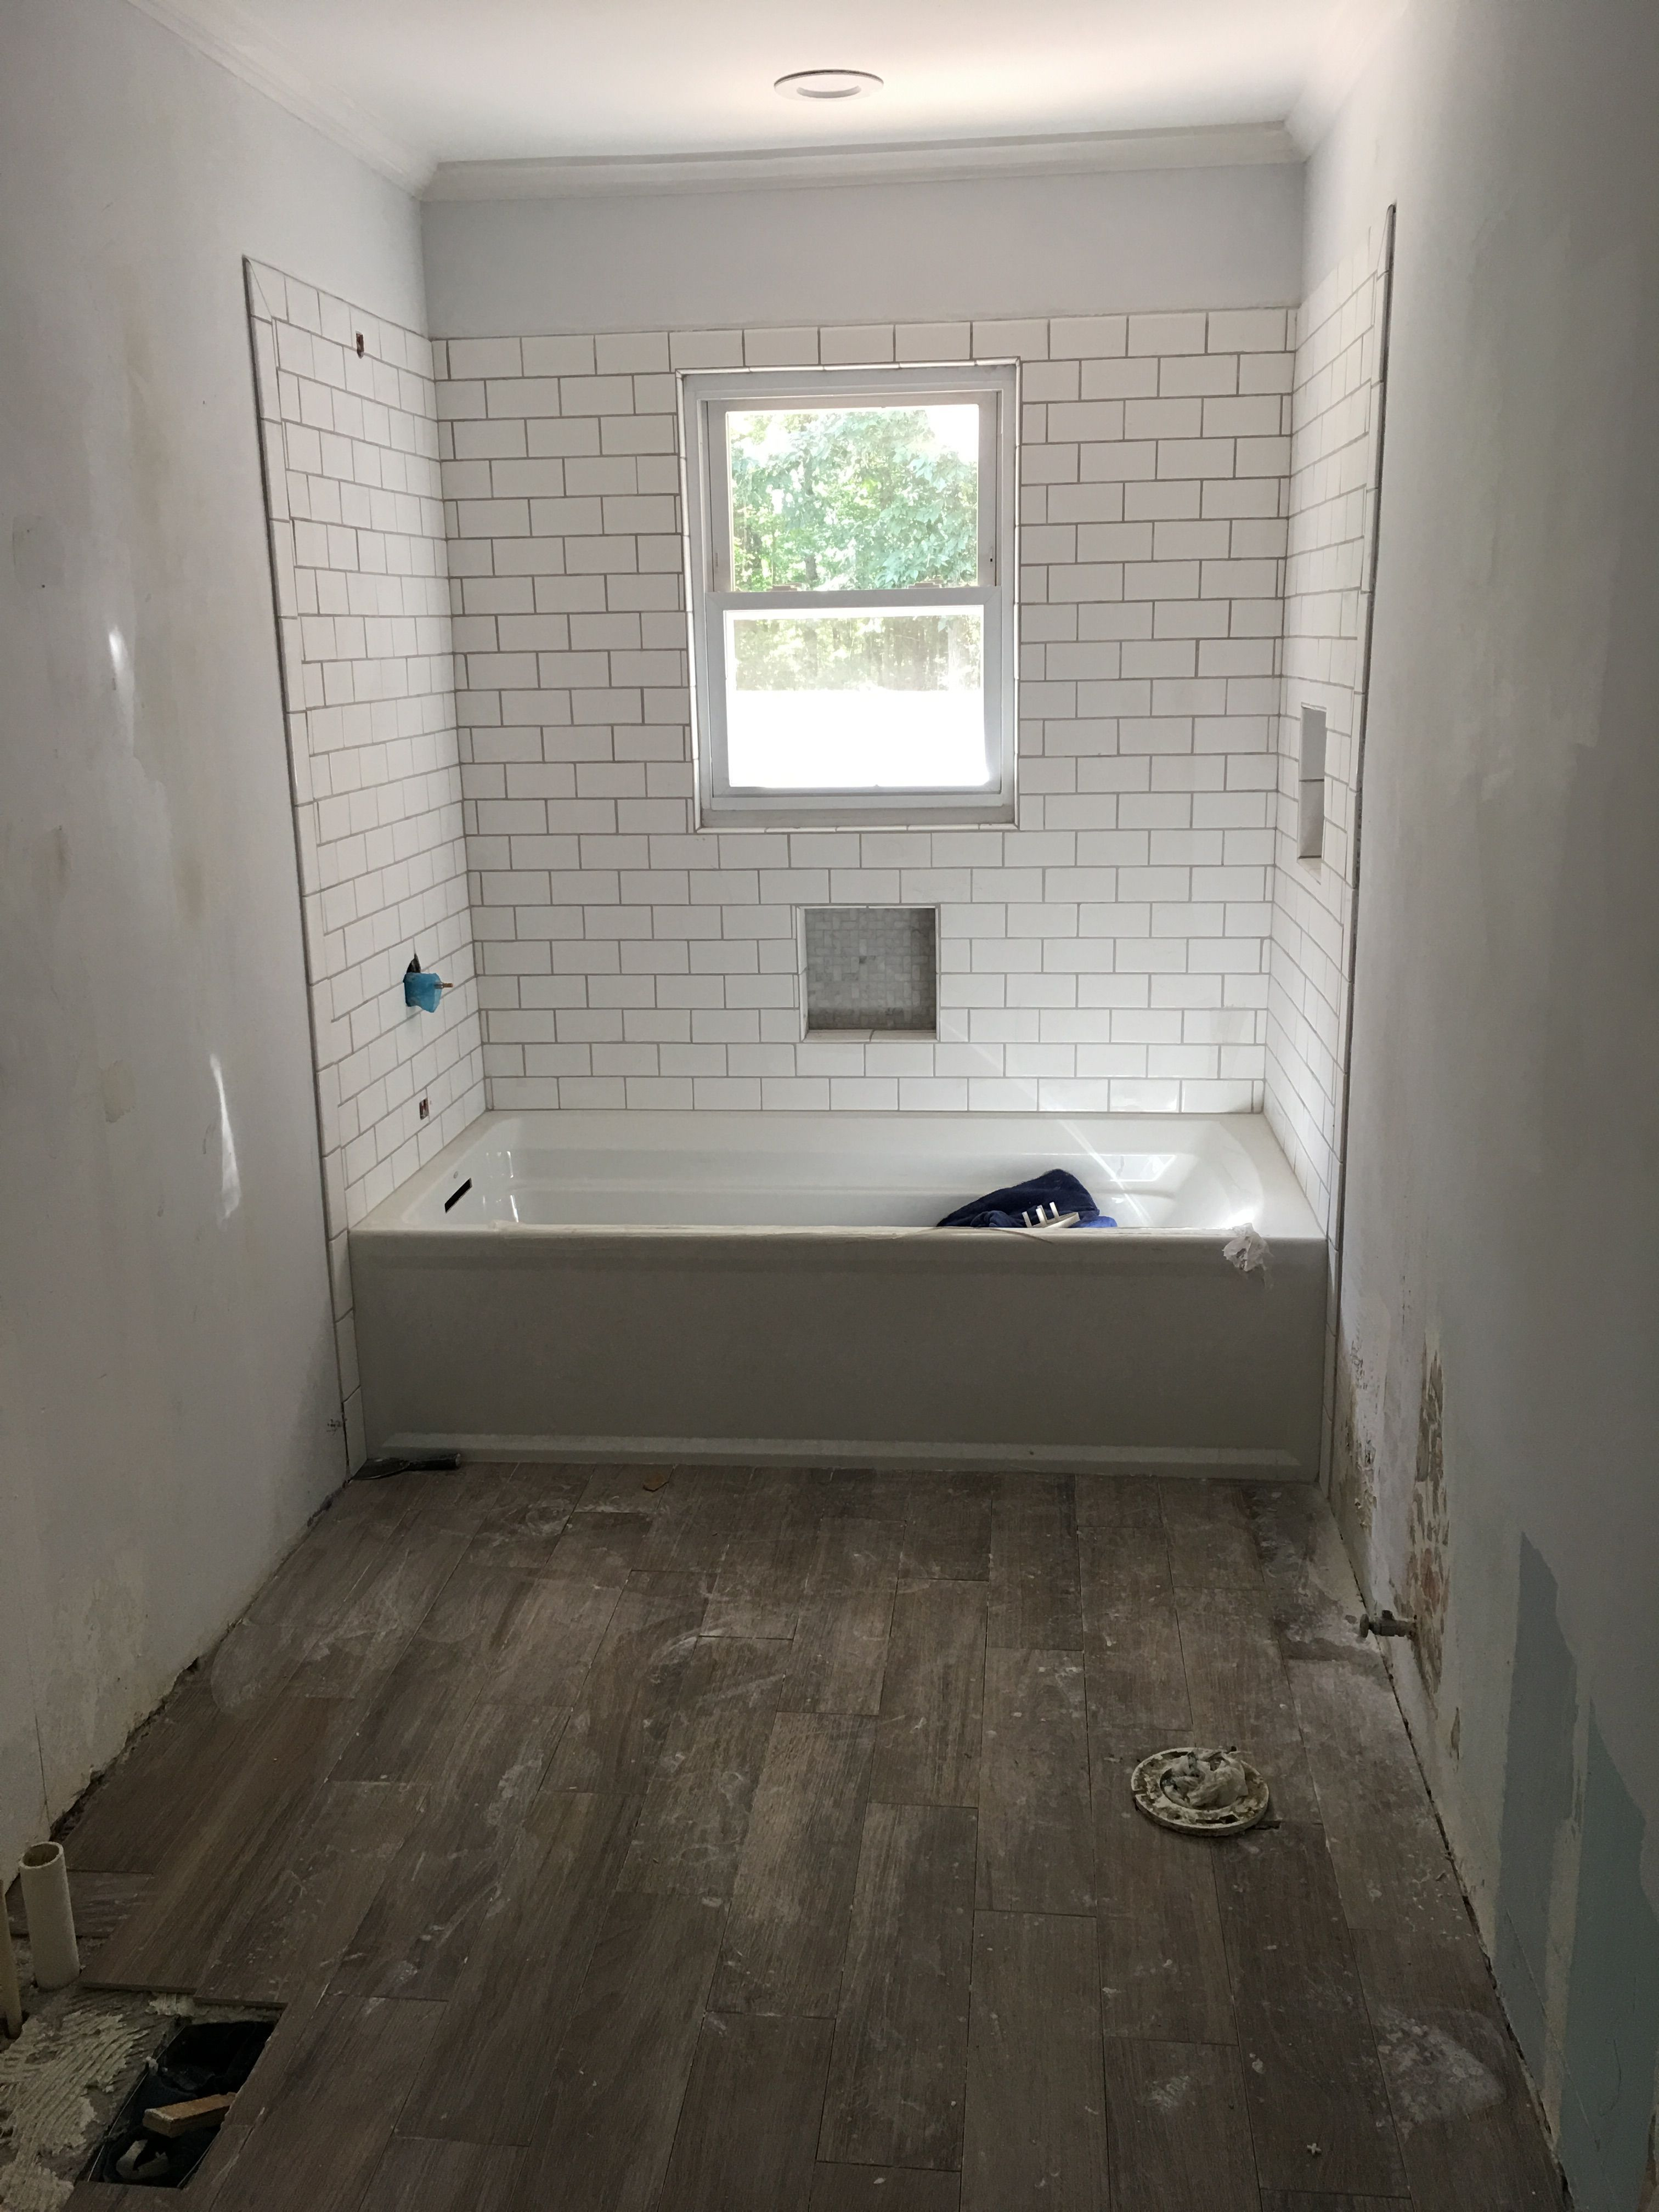 From A Simple Bonus Room Update To A Remodel Diy Network Can Help You Get The Job Done Disco Bathrooms Remodel Small Bathroom Remodel Bathroom Remodel Master